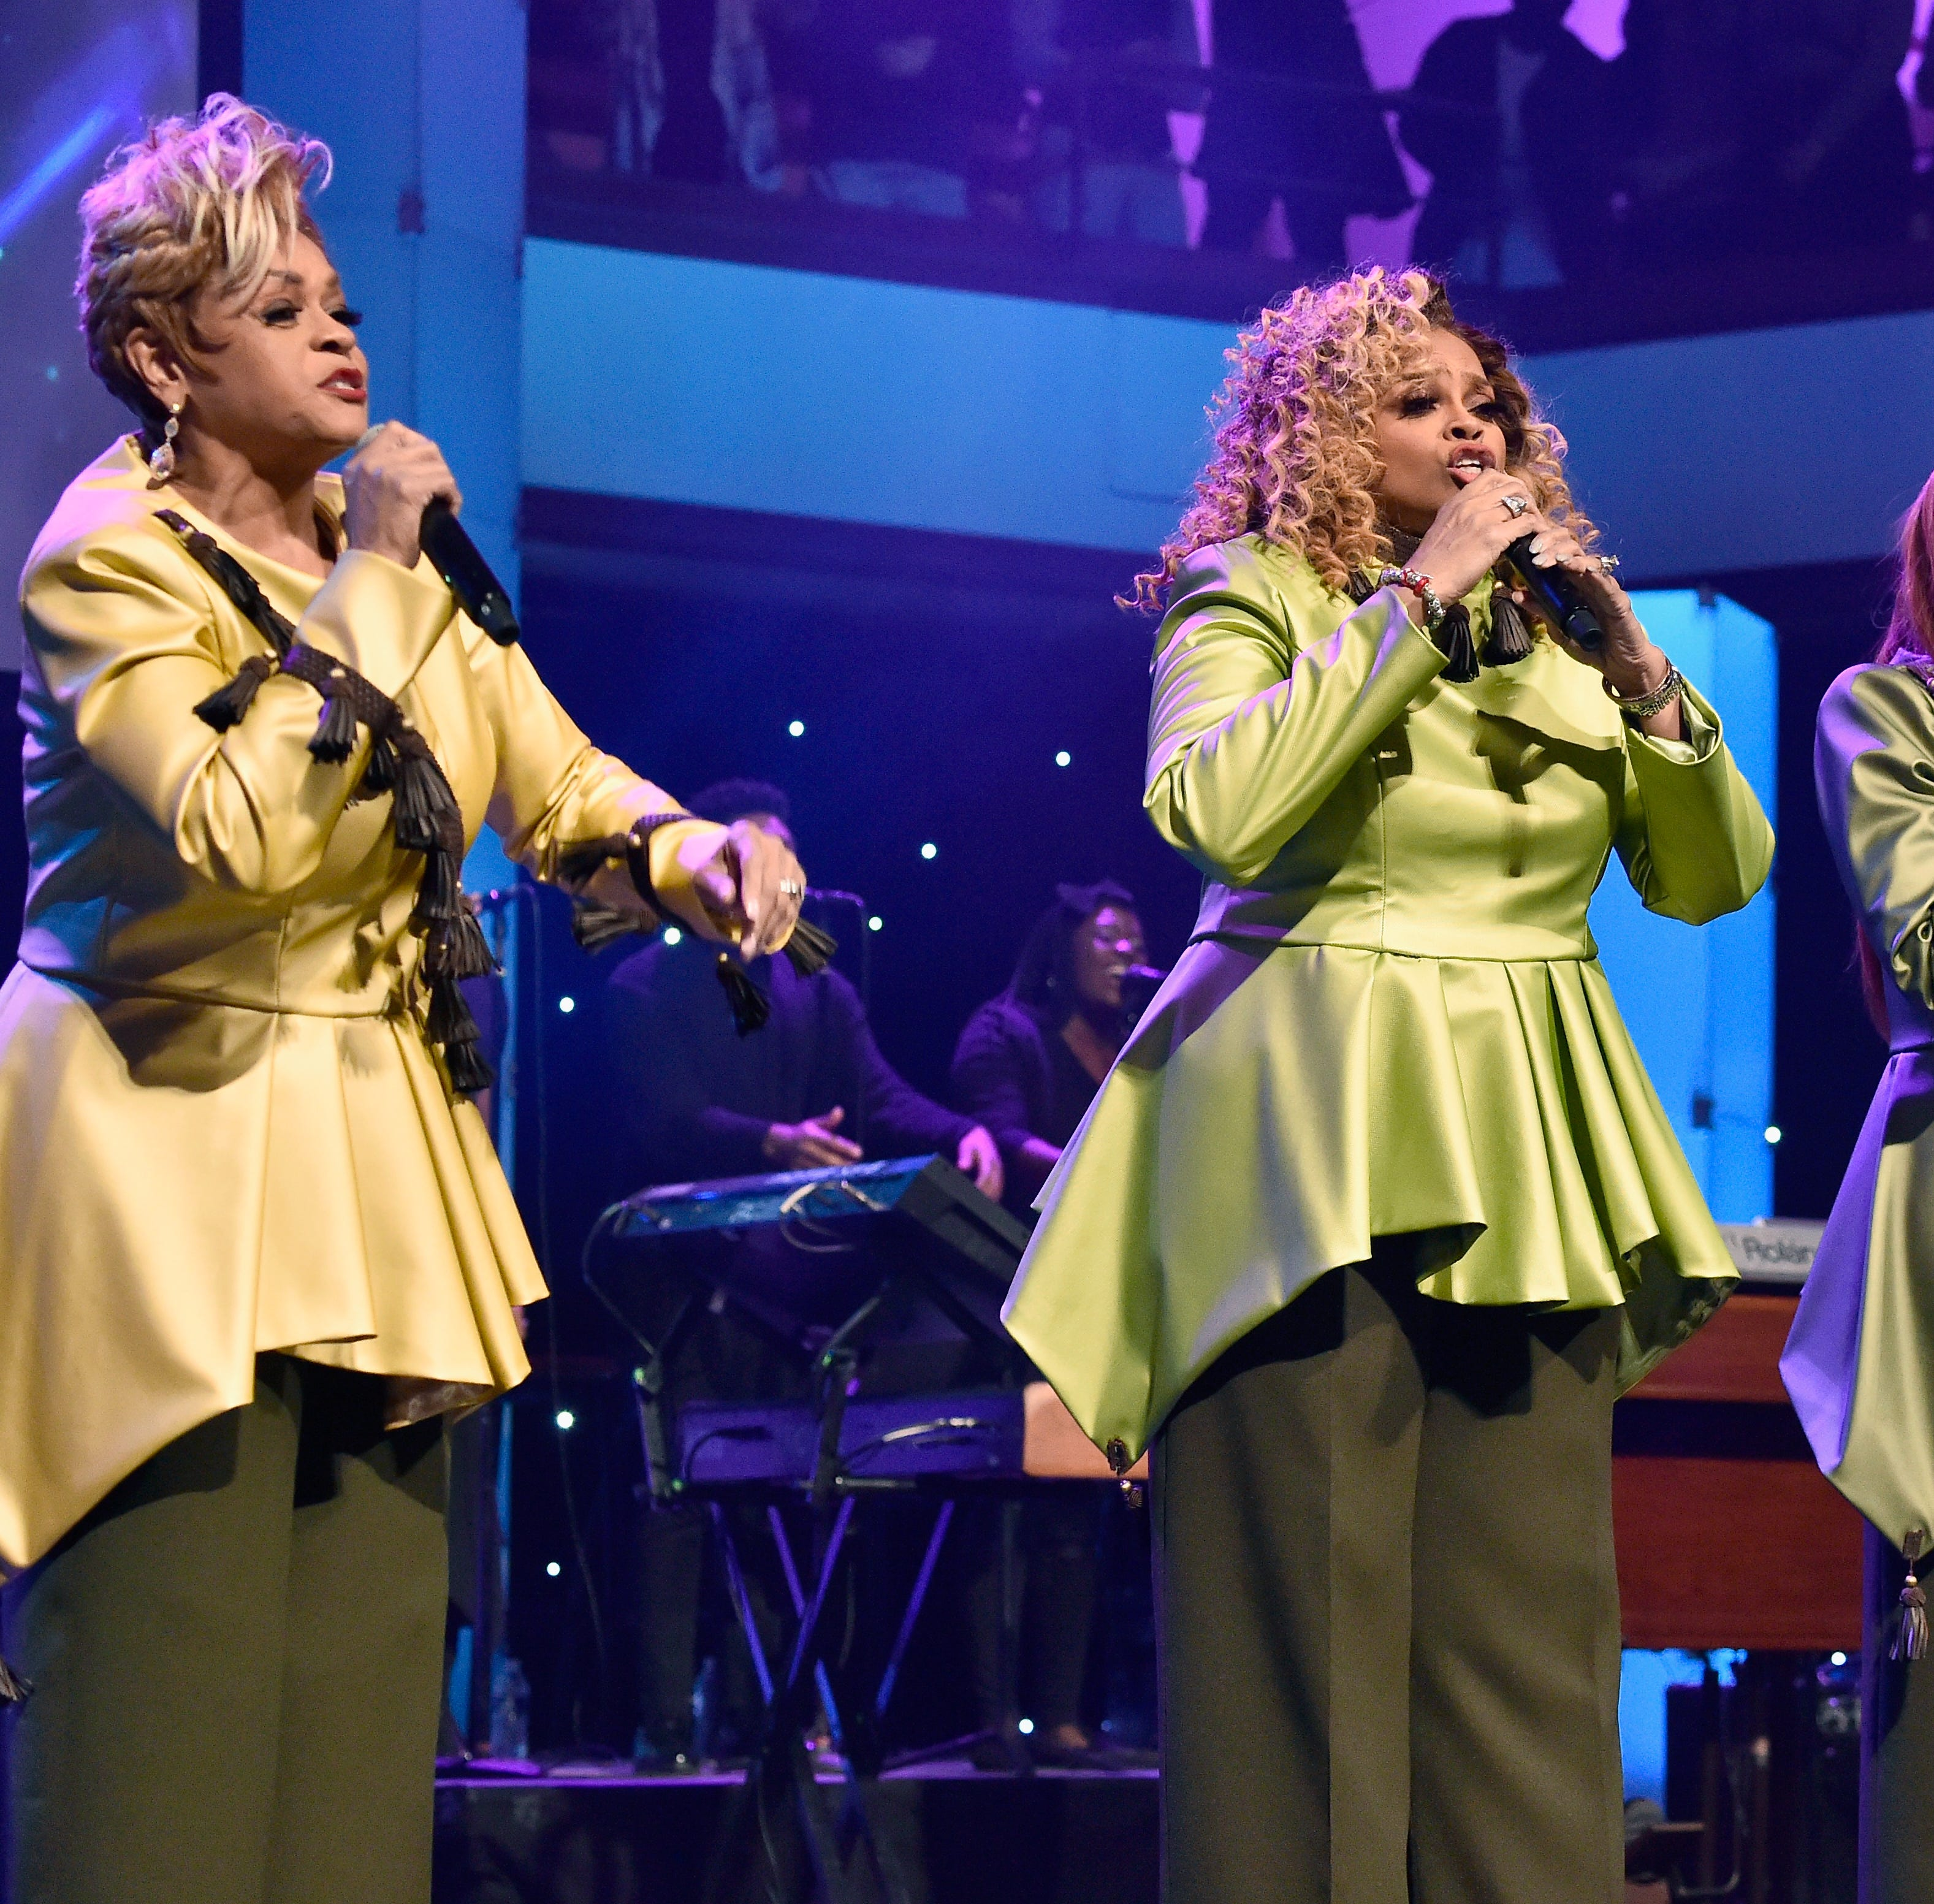 (L-R) Jacky Clark-Chisholm, Dorinda Clark-Cole and Karen Clark Sheard of The Clark Sisters